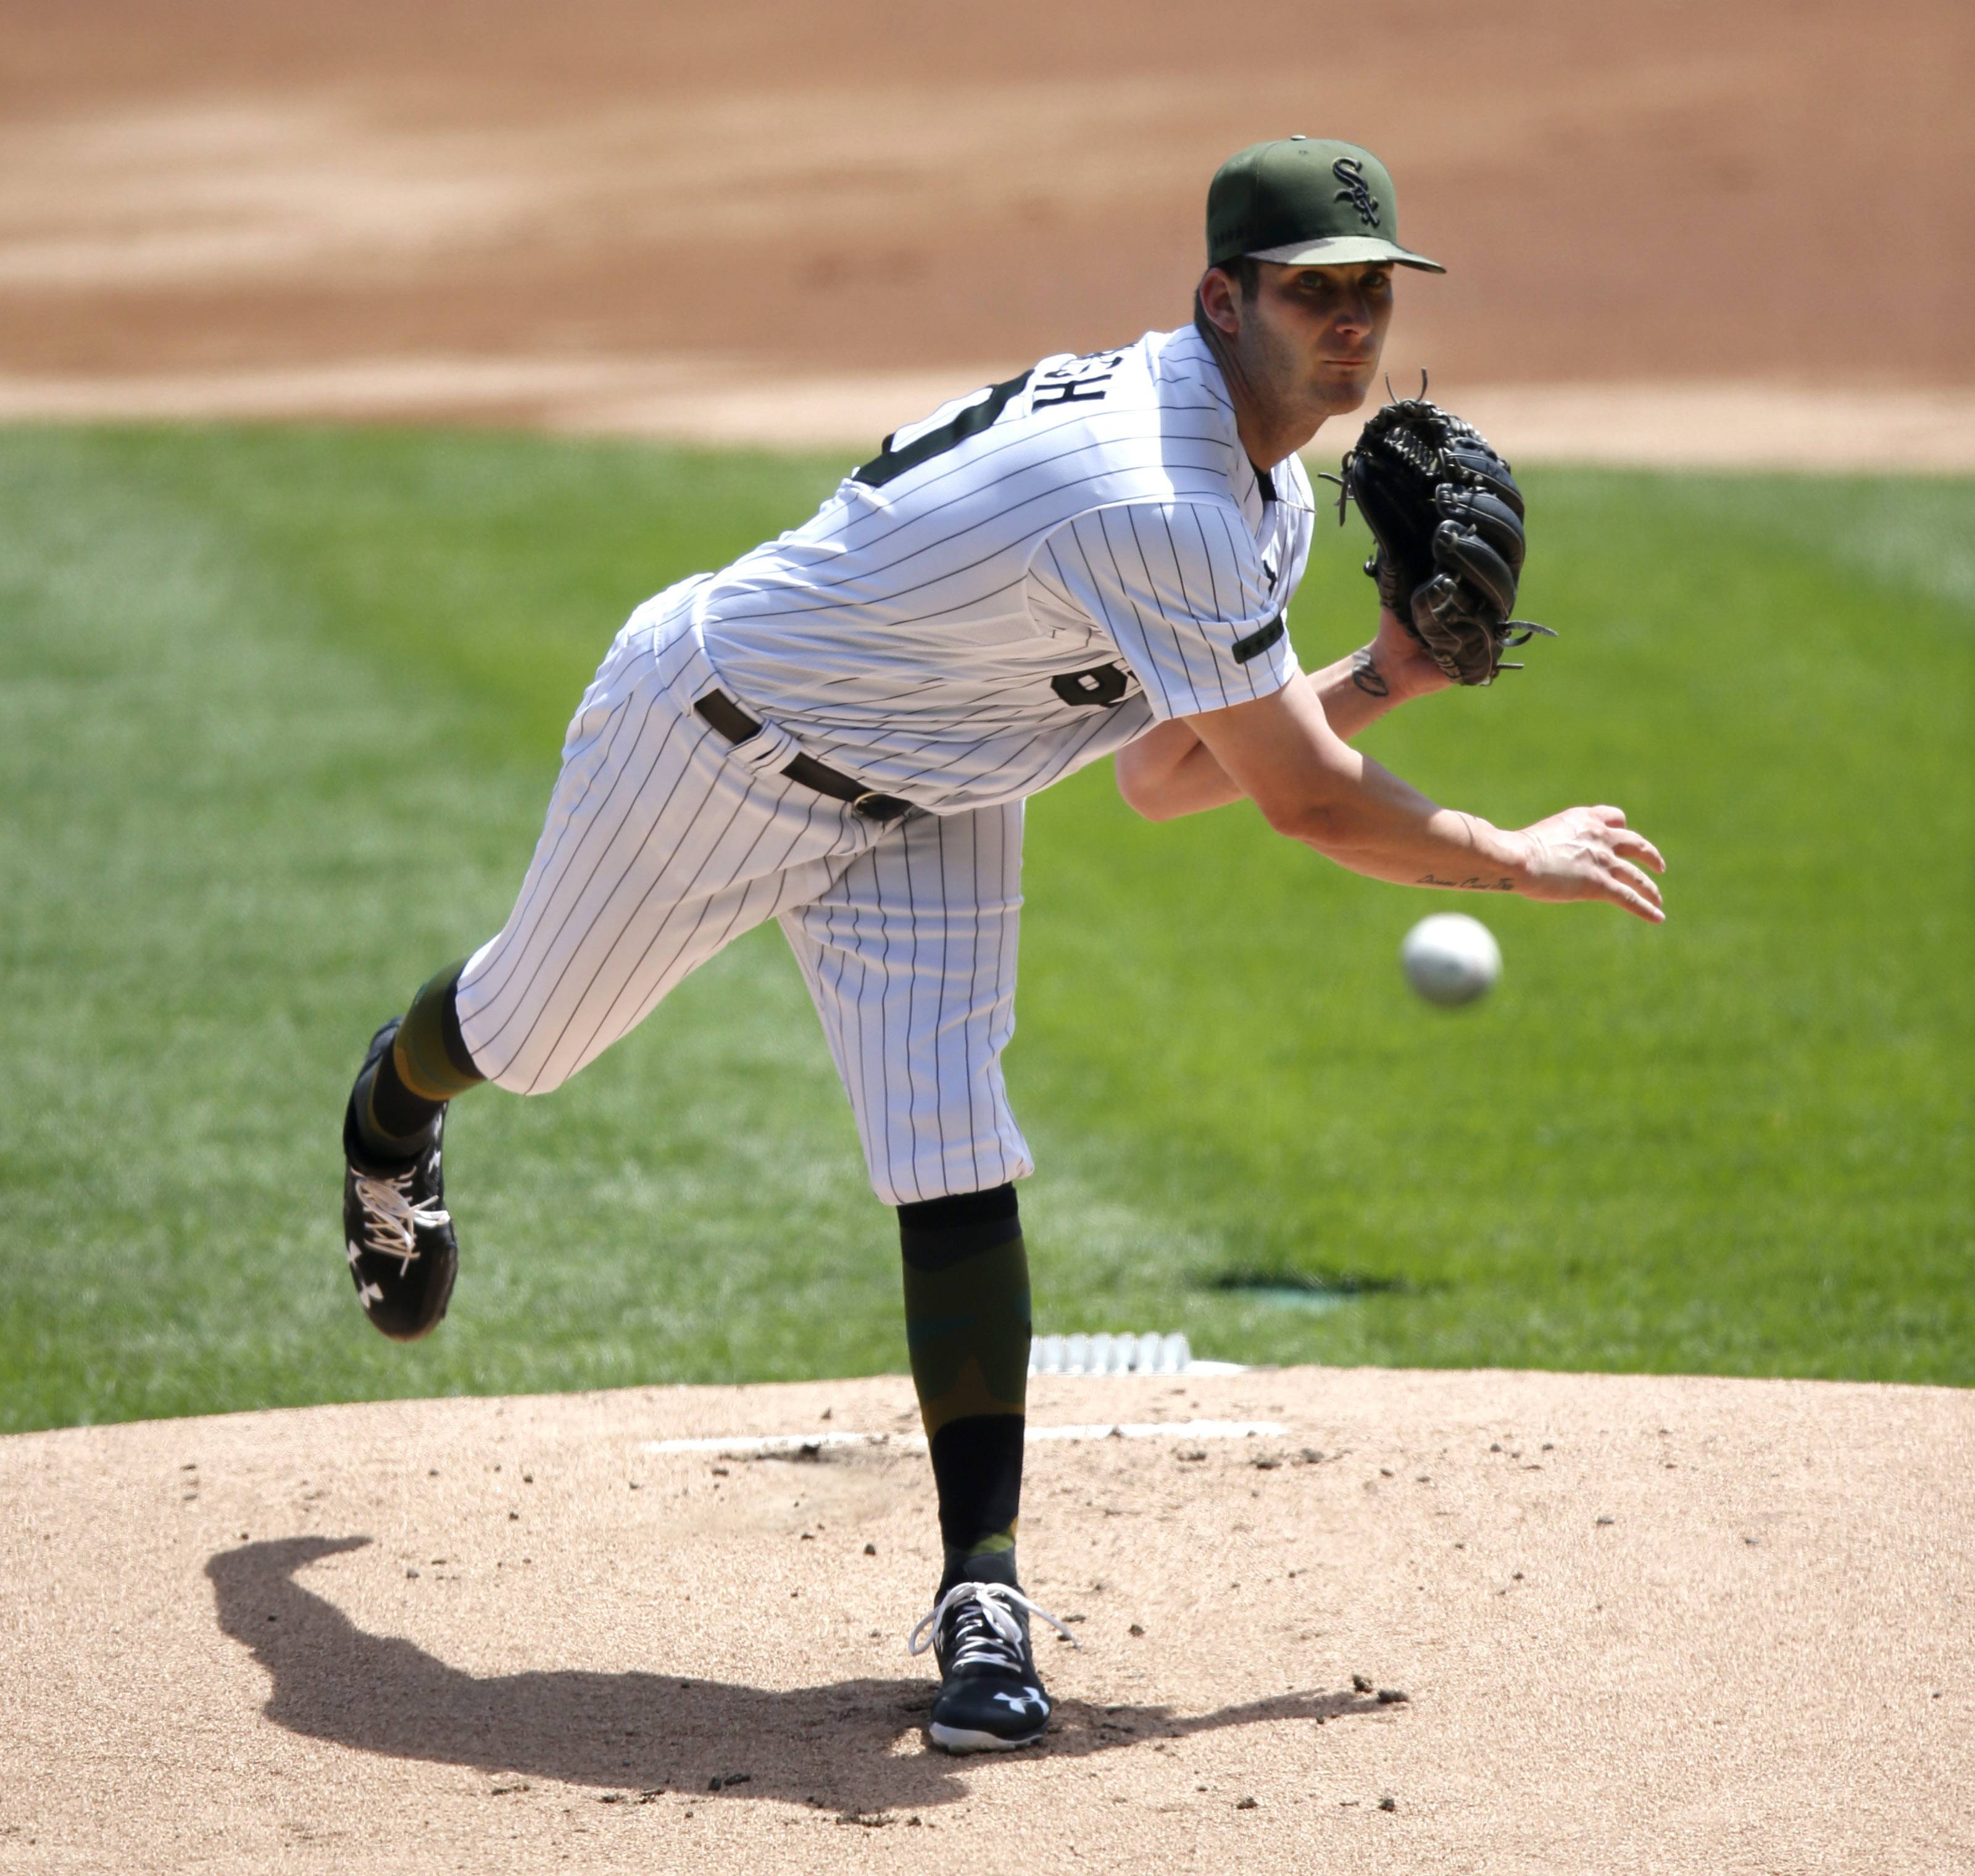 Chicago White Sox's starting pitcher Tyler Danish delivers during the first inning of a baseball game against the Detroit Tigers Saturday, May 27, 2017, in Chicago. (AP Photo/Charles Rex Arbogast)